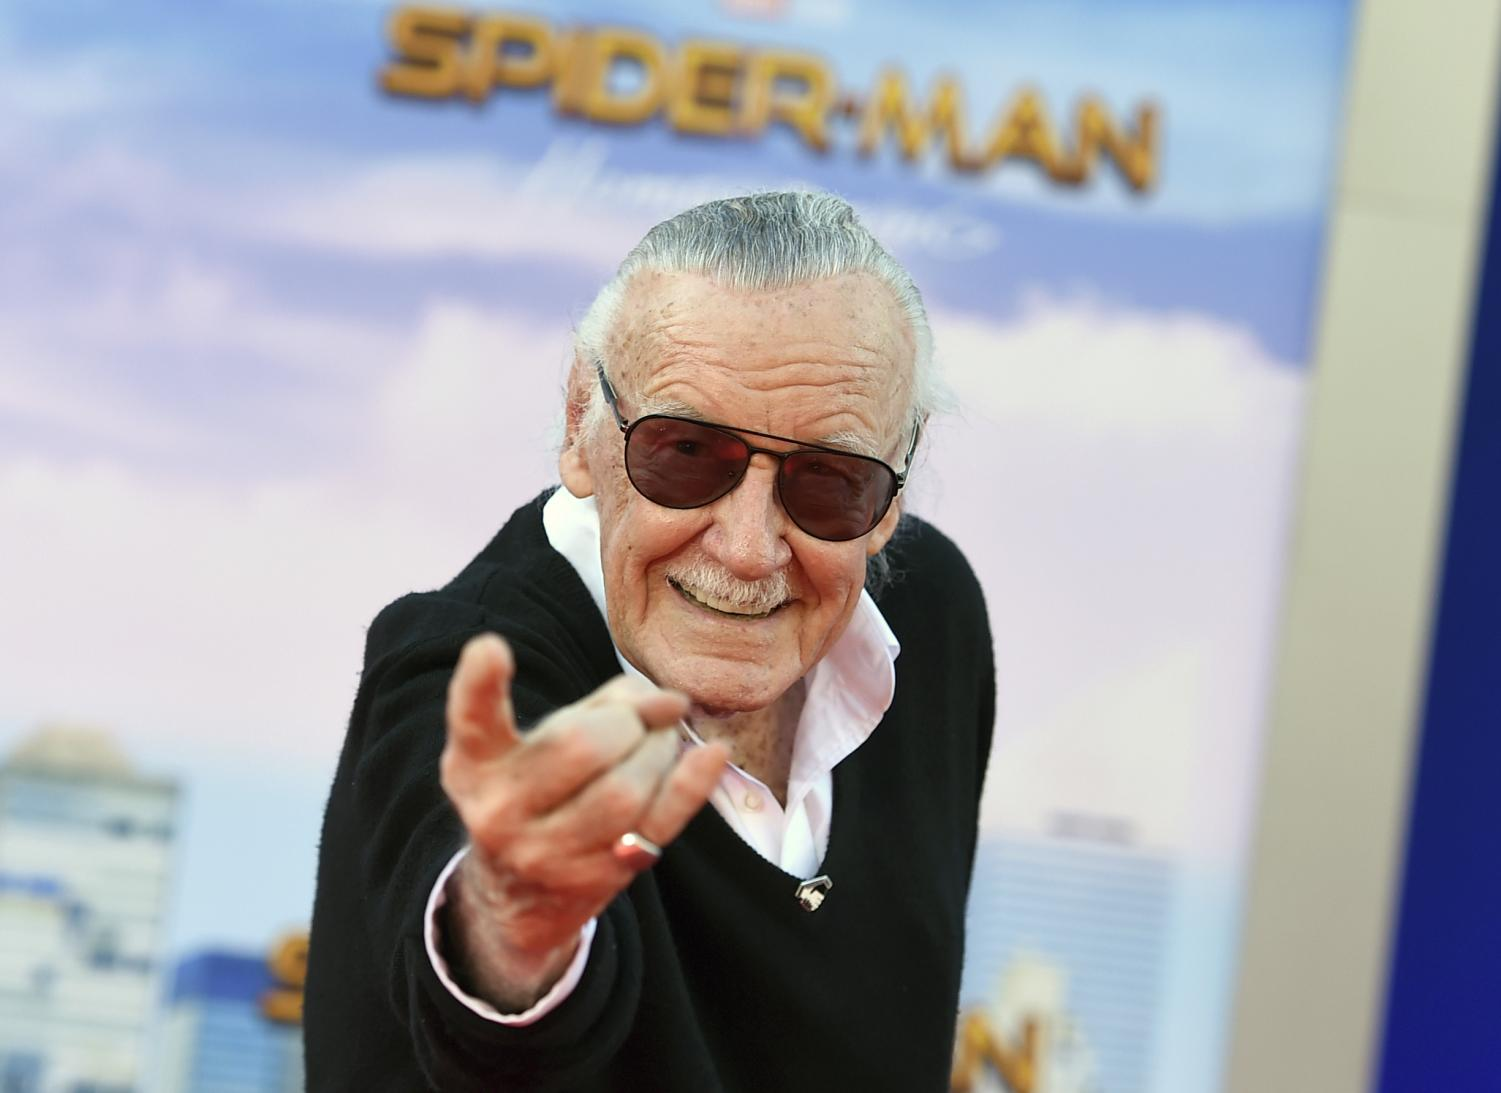 In this July 21, 2011, file photo, Stan Lee poses for a portrait at the LMT Music Lodge during Comic Con in San Diego. A small, private funeral has been held to mourn Marvel Comics mogul Stan Lee, who died Monday at age 95, and his company is making more plans to memorialize him